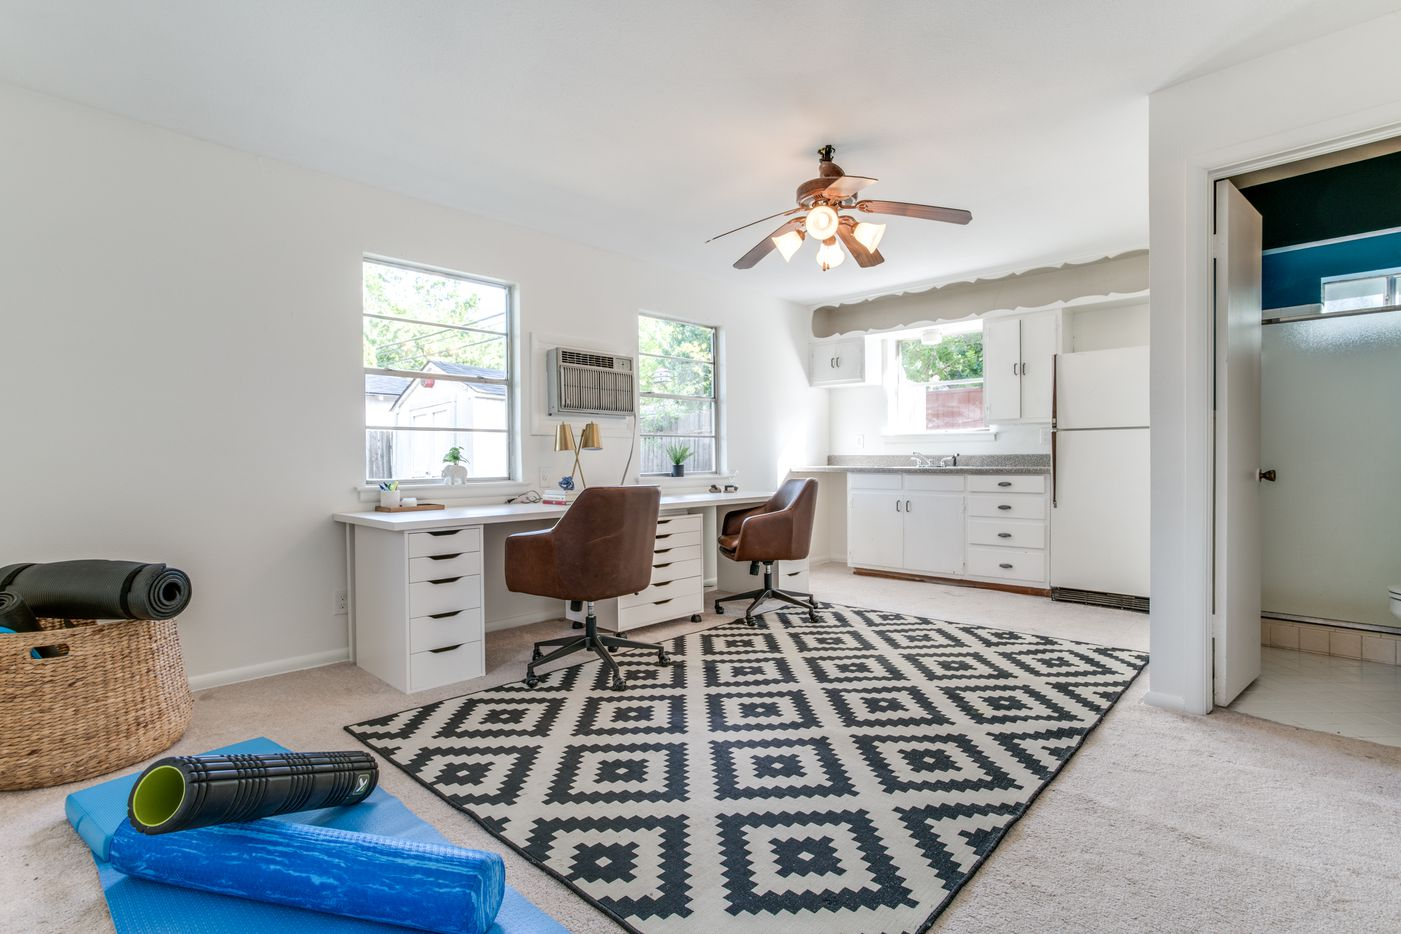 A renovated 1950s home in Old Lake Highlands at 603 Classen Drive has an accessory dwelling that currently functions as a yoga room and office. Home buyers are increasingly looking for extra space as the pandemic has more people working and schooling from home.